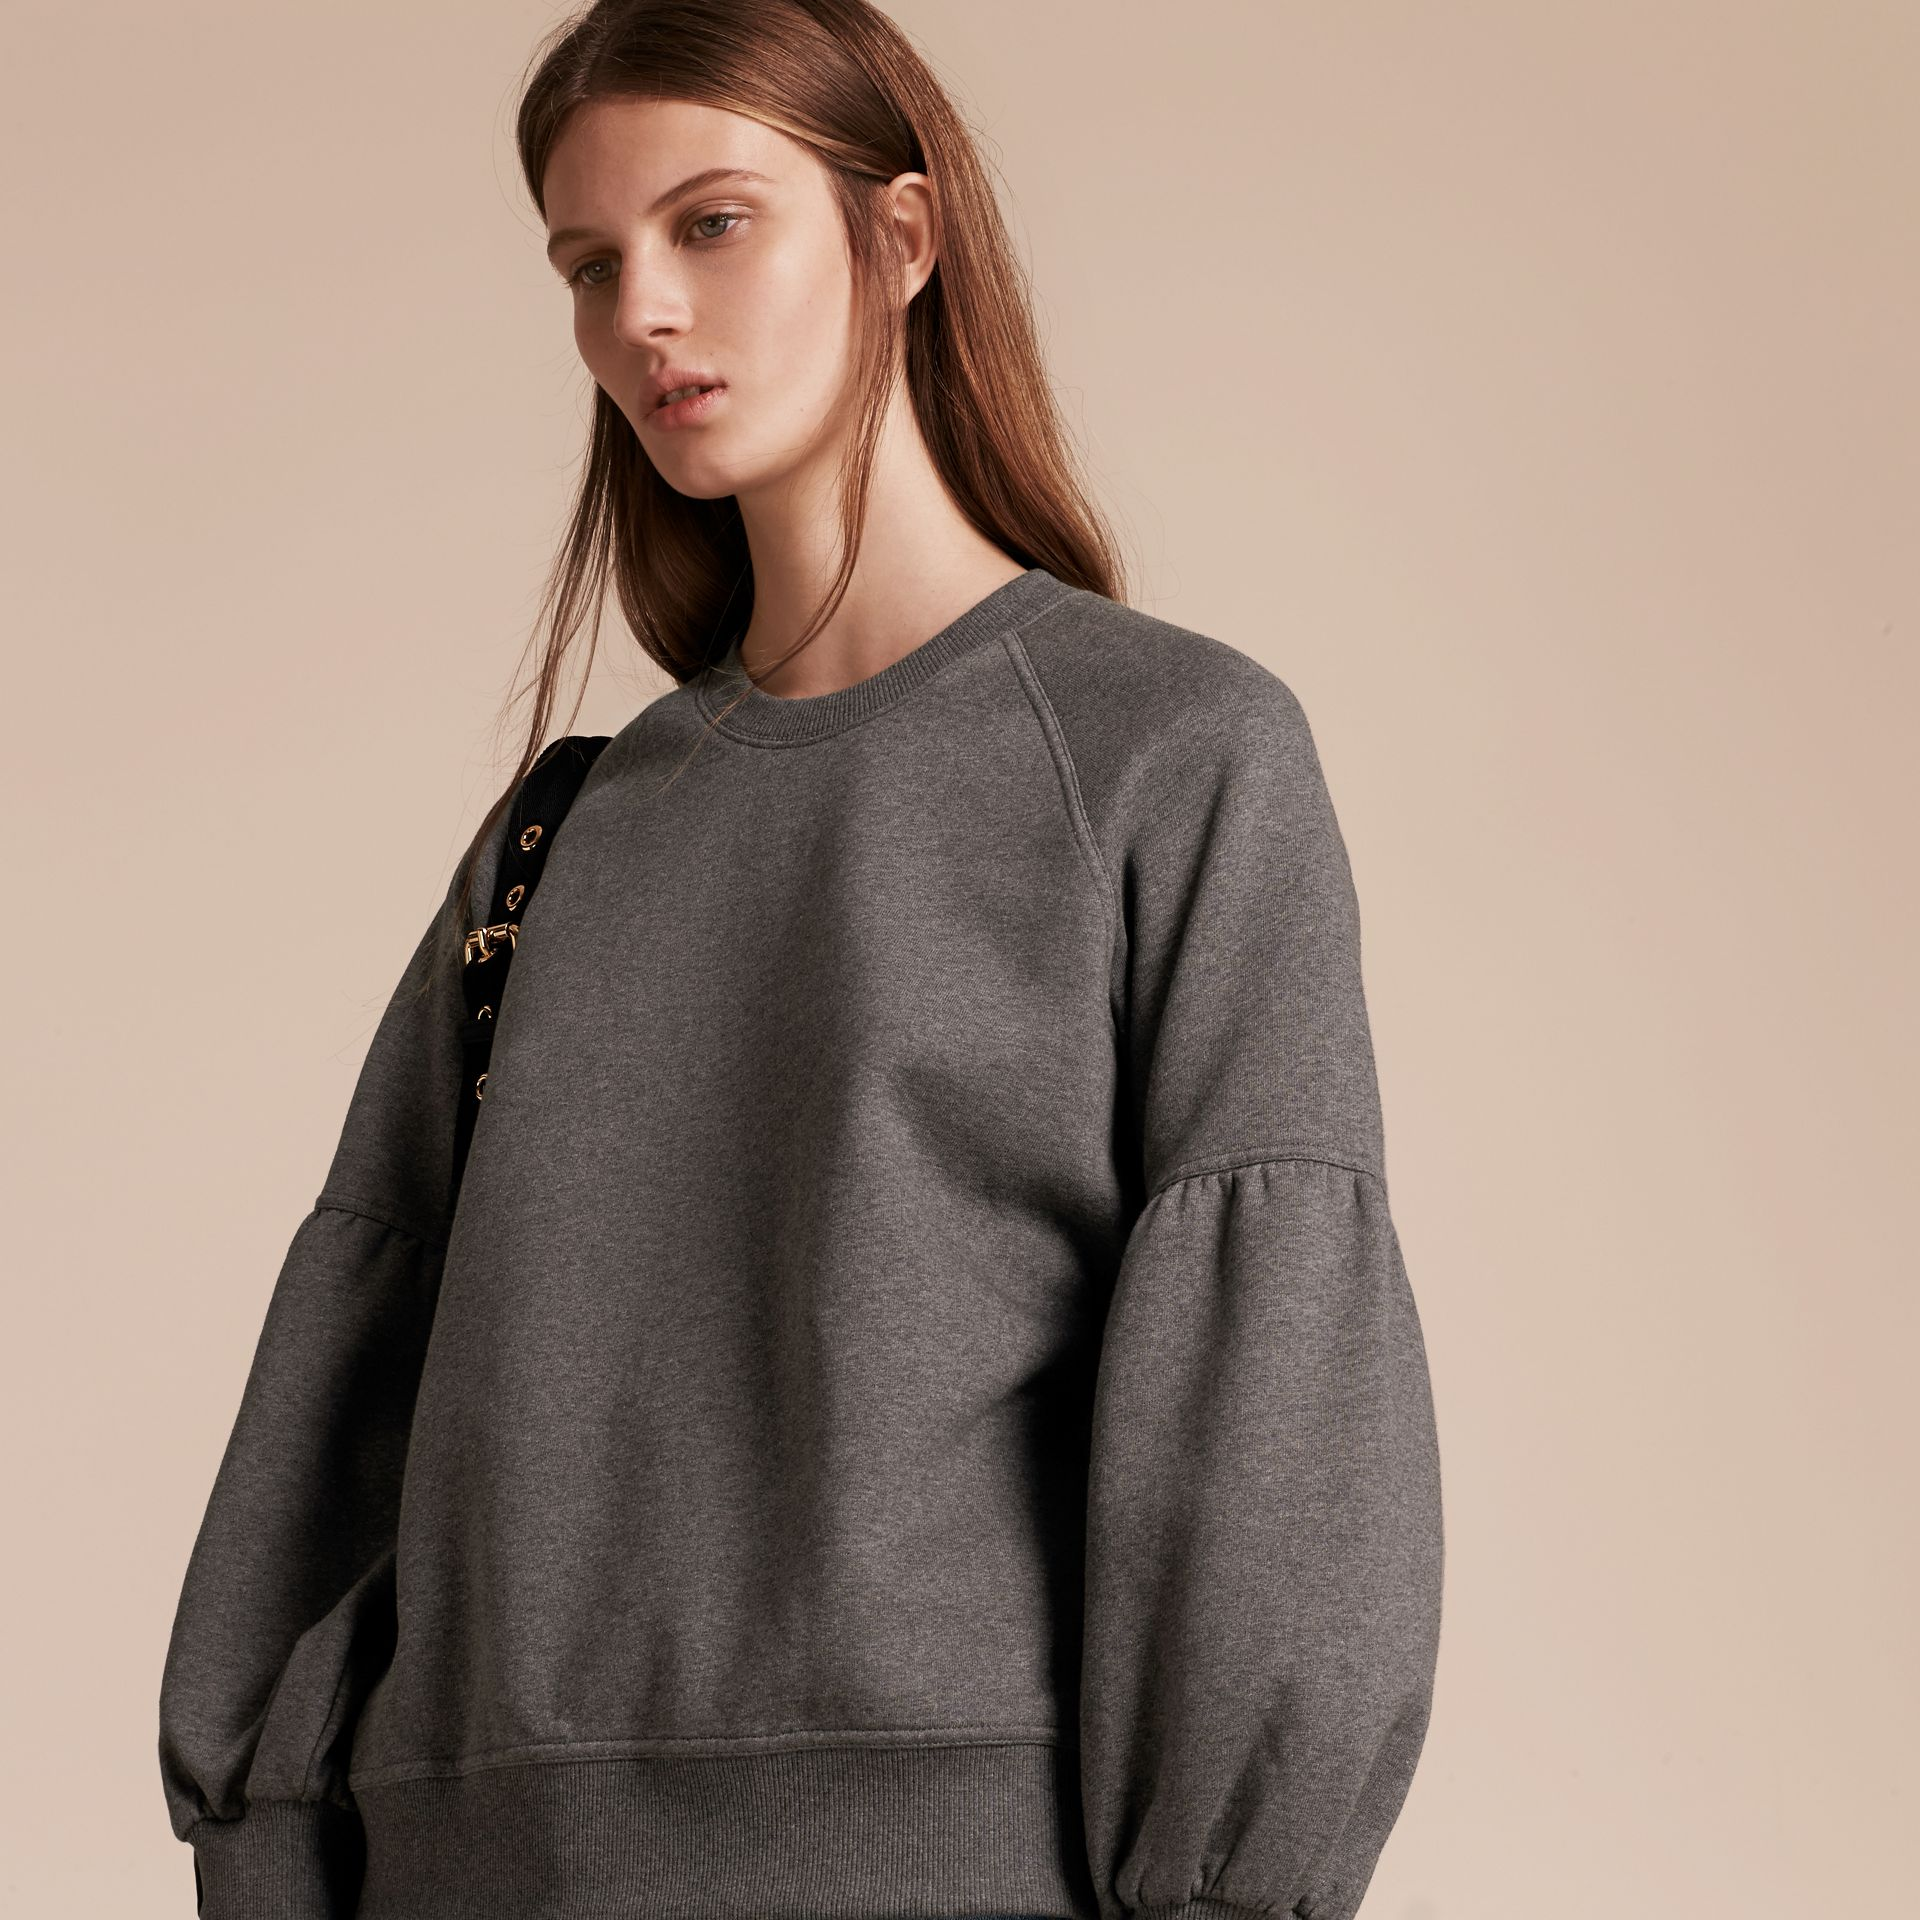 Mid grey melange Brushed-back Jersey Sweatshirt with Bell Sleeves Mid Grey Melange - gallery image 5